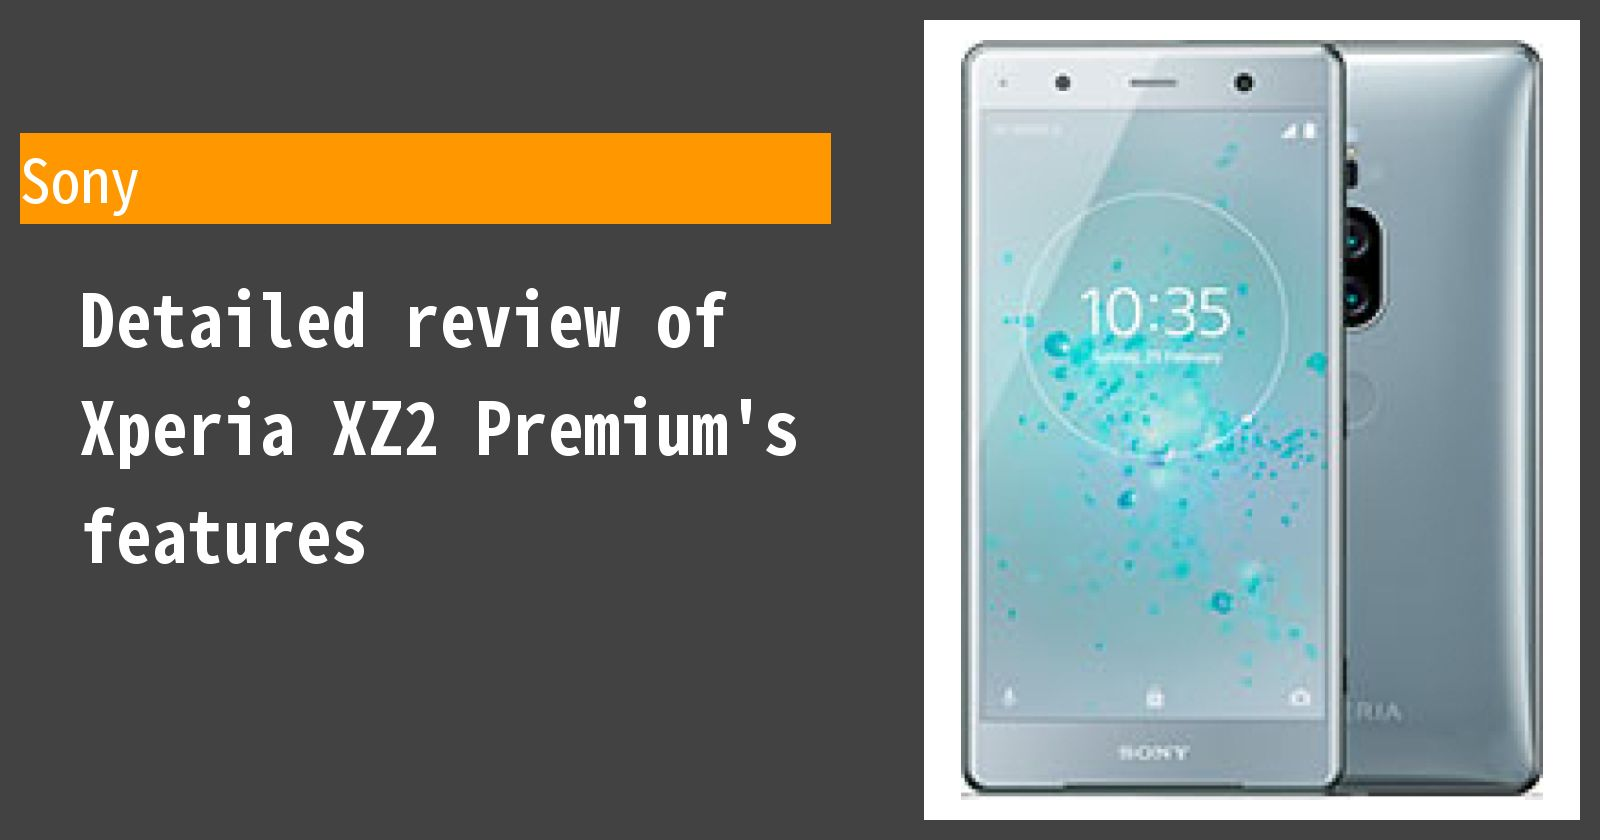 Detailed review of Xperia XZ2 Premium's features